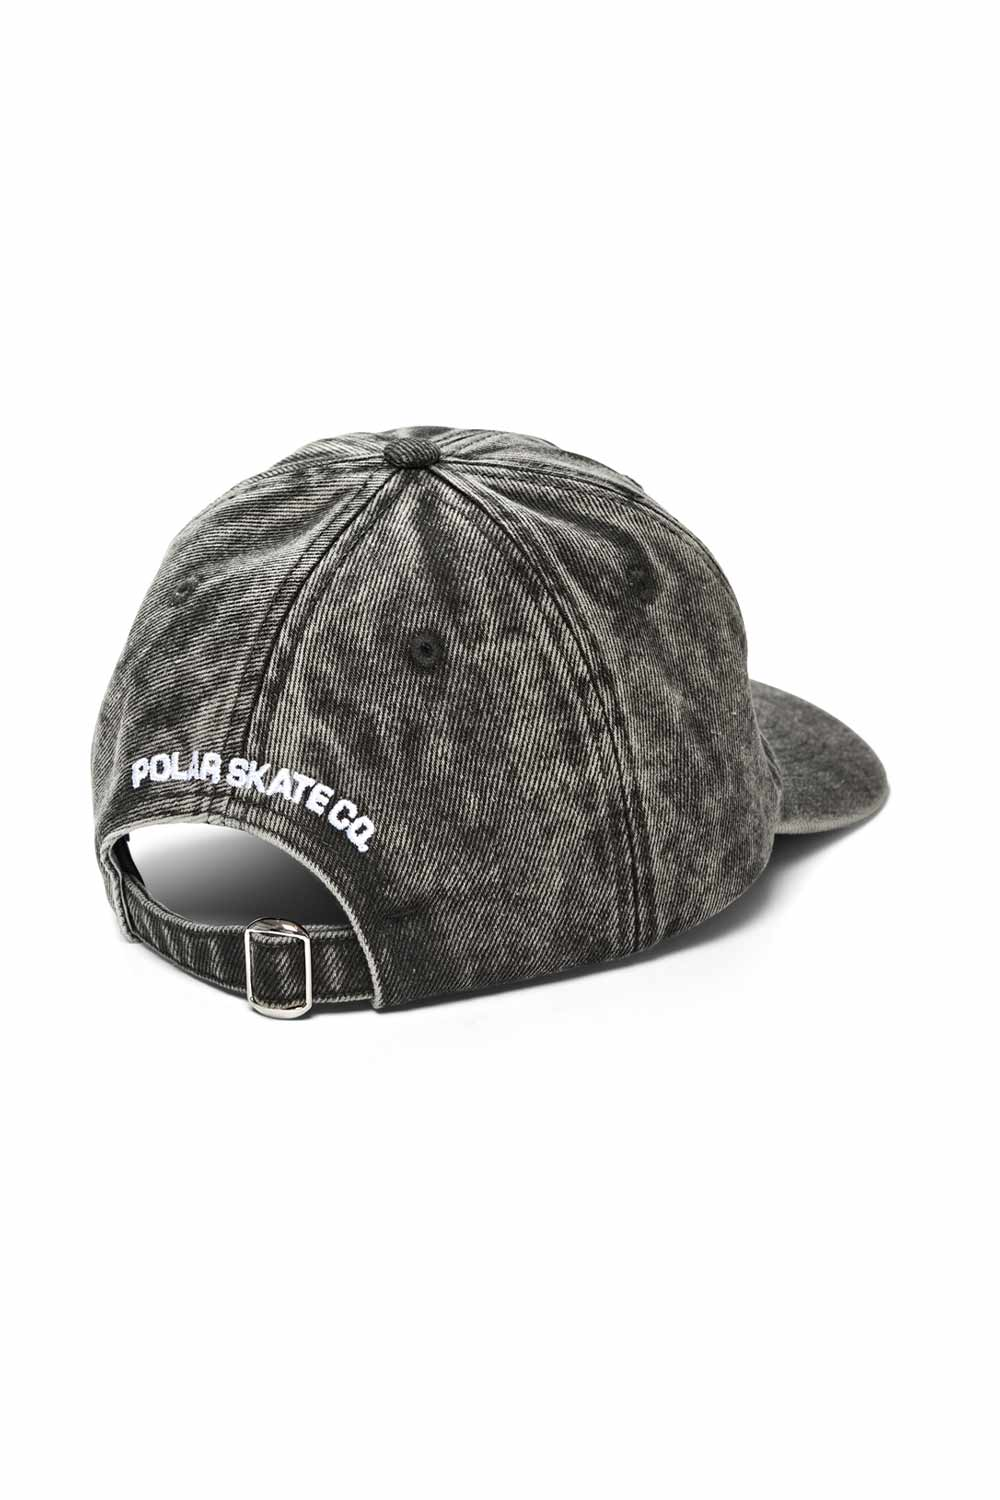 Polar Skate Co Denim Cap - Black Acid